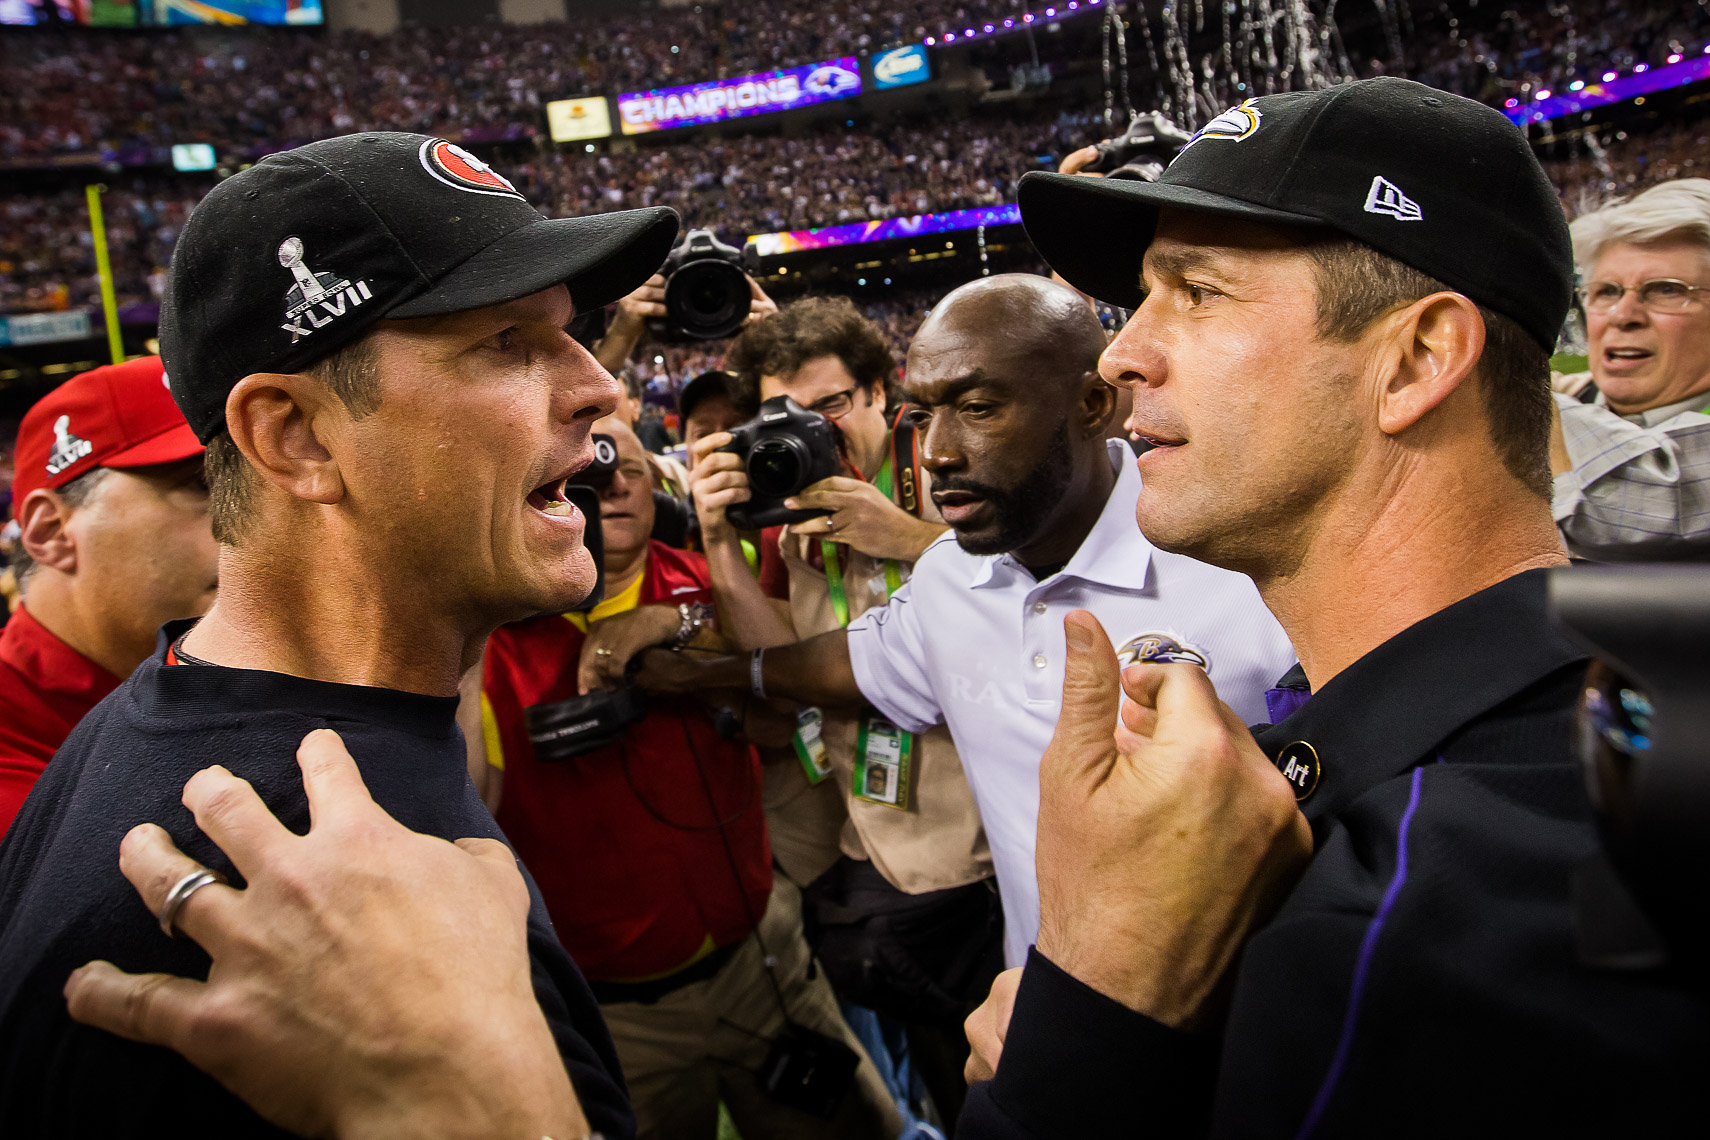 superbowl37  Best Super Bowl XLVII 47 photos between Baltimore Ravens and 49ers Harbaugh Bowl Jim Harbaugh